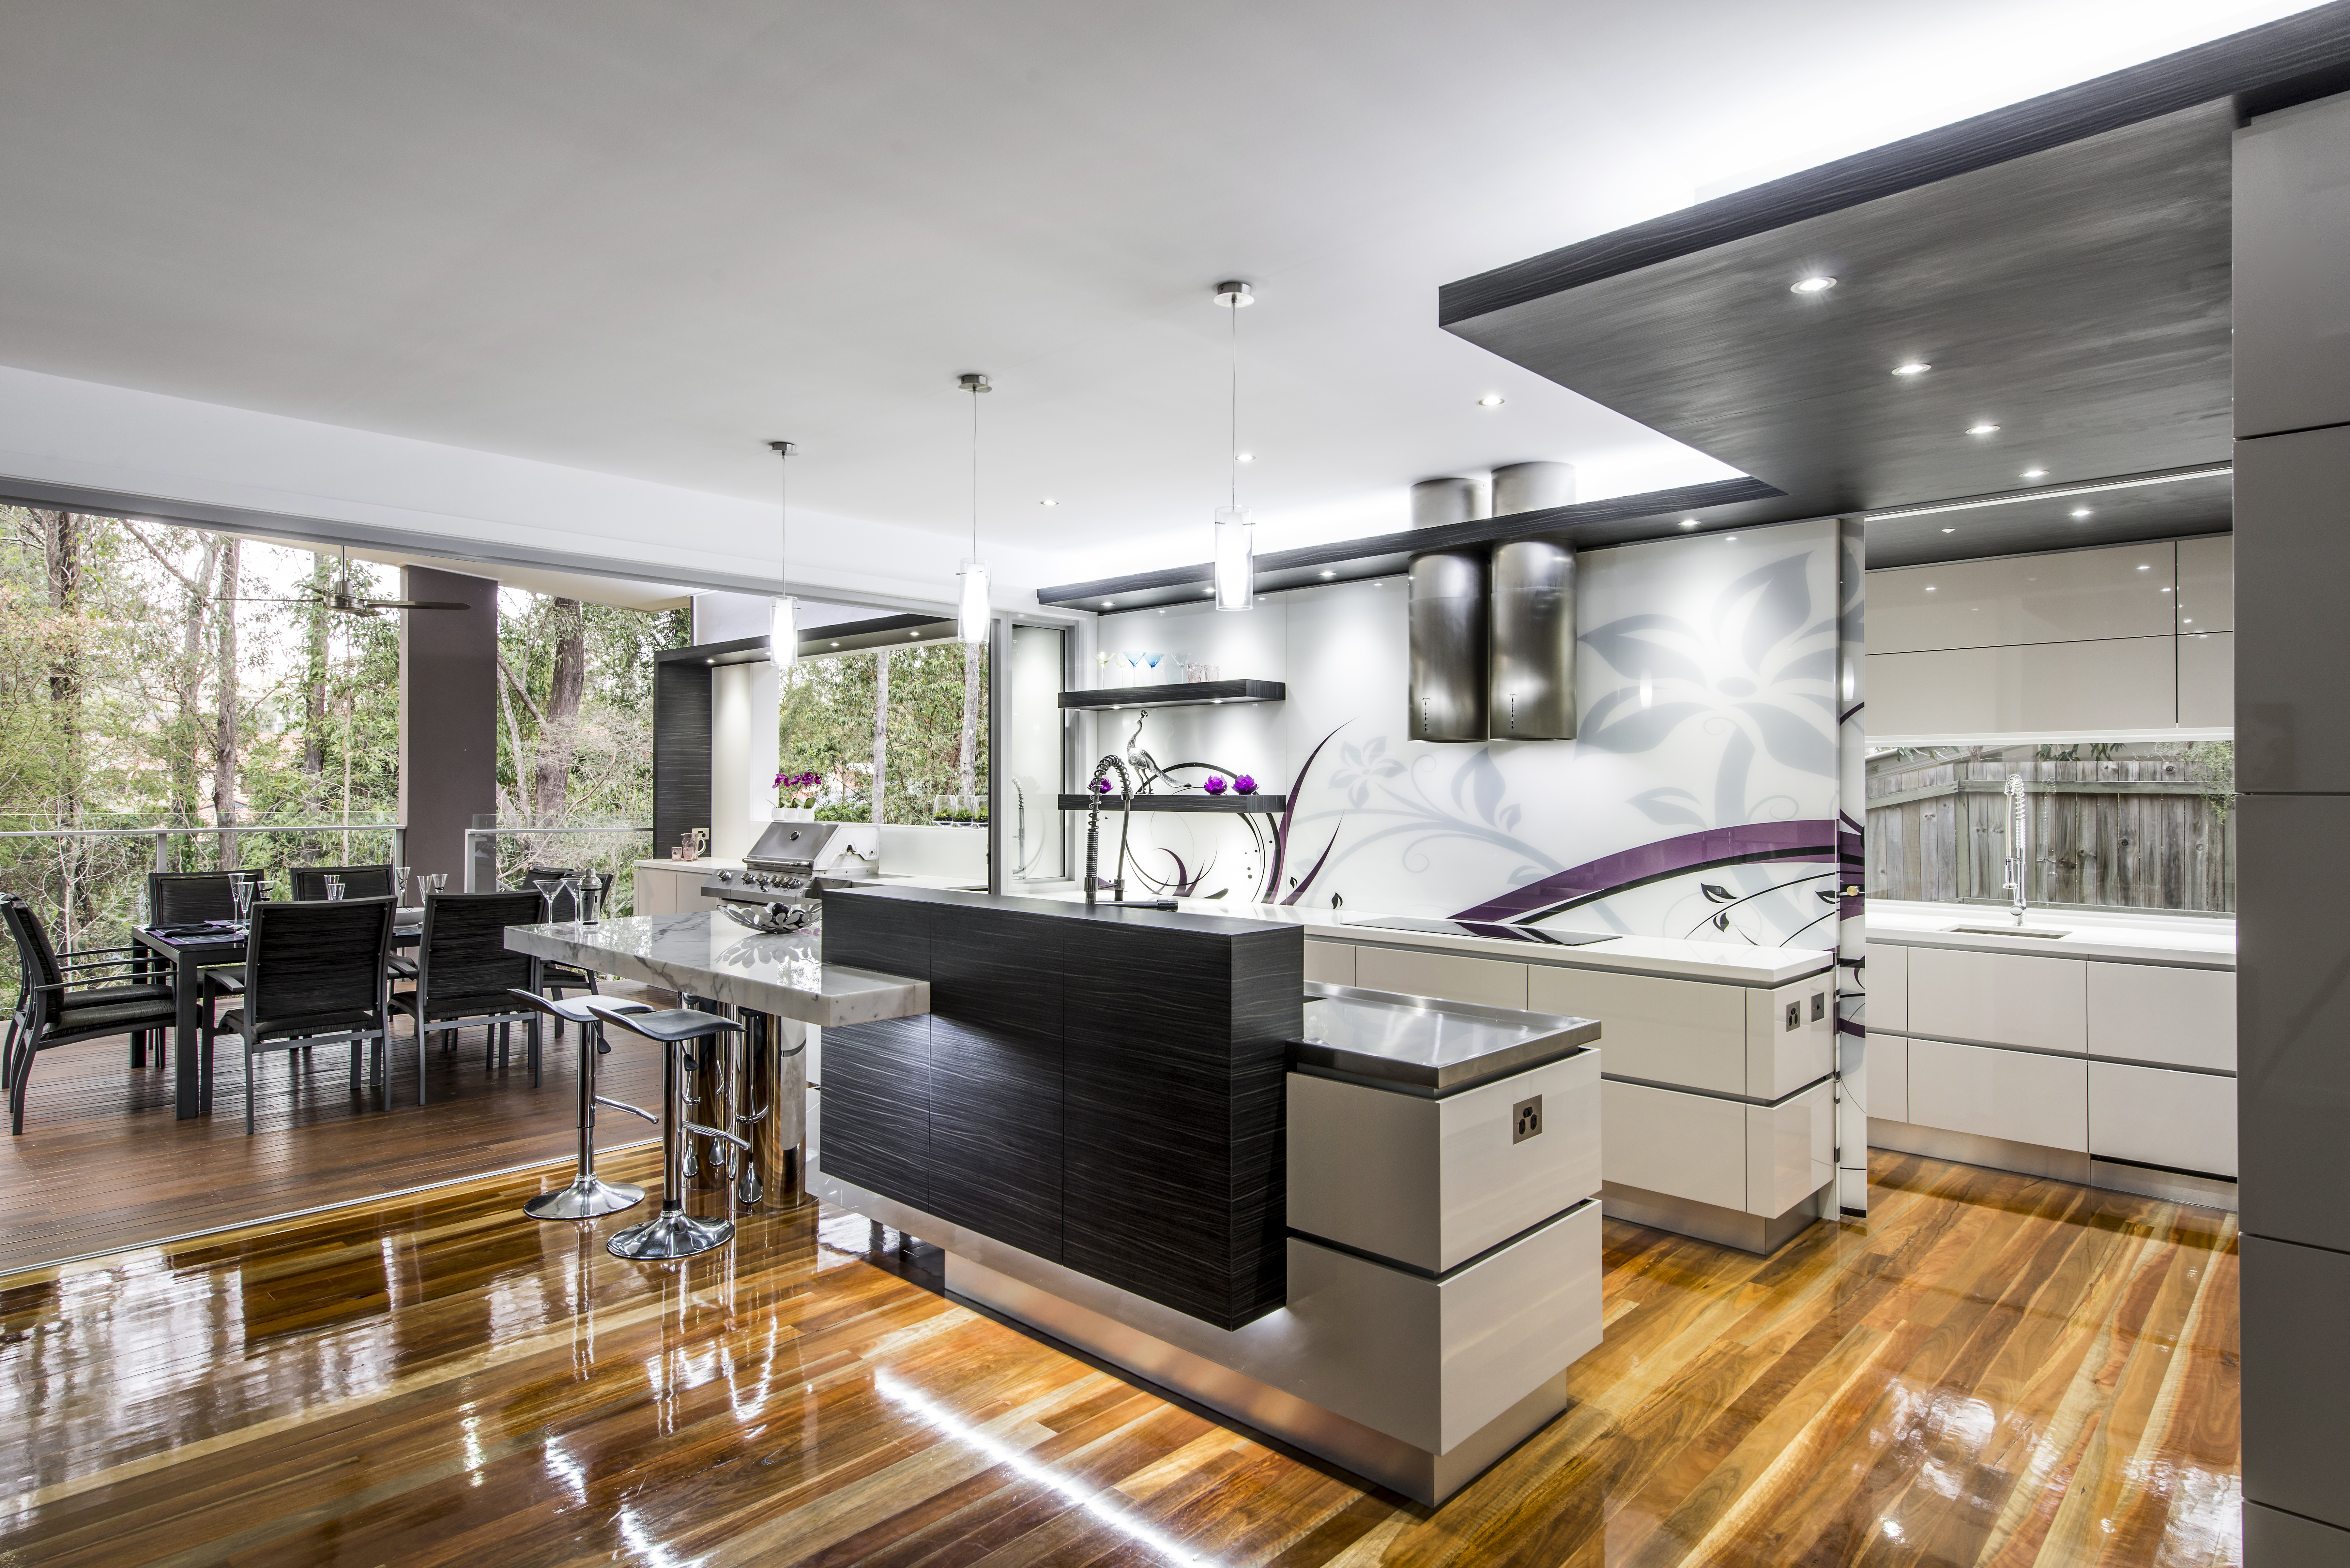 Brisbane kitchen renovation by sublime archtectural interiors